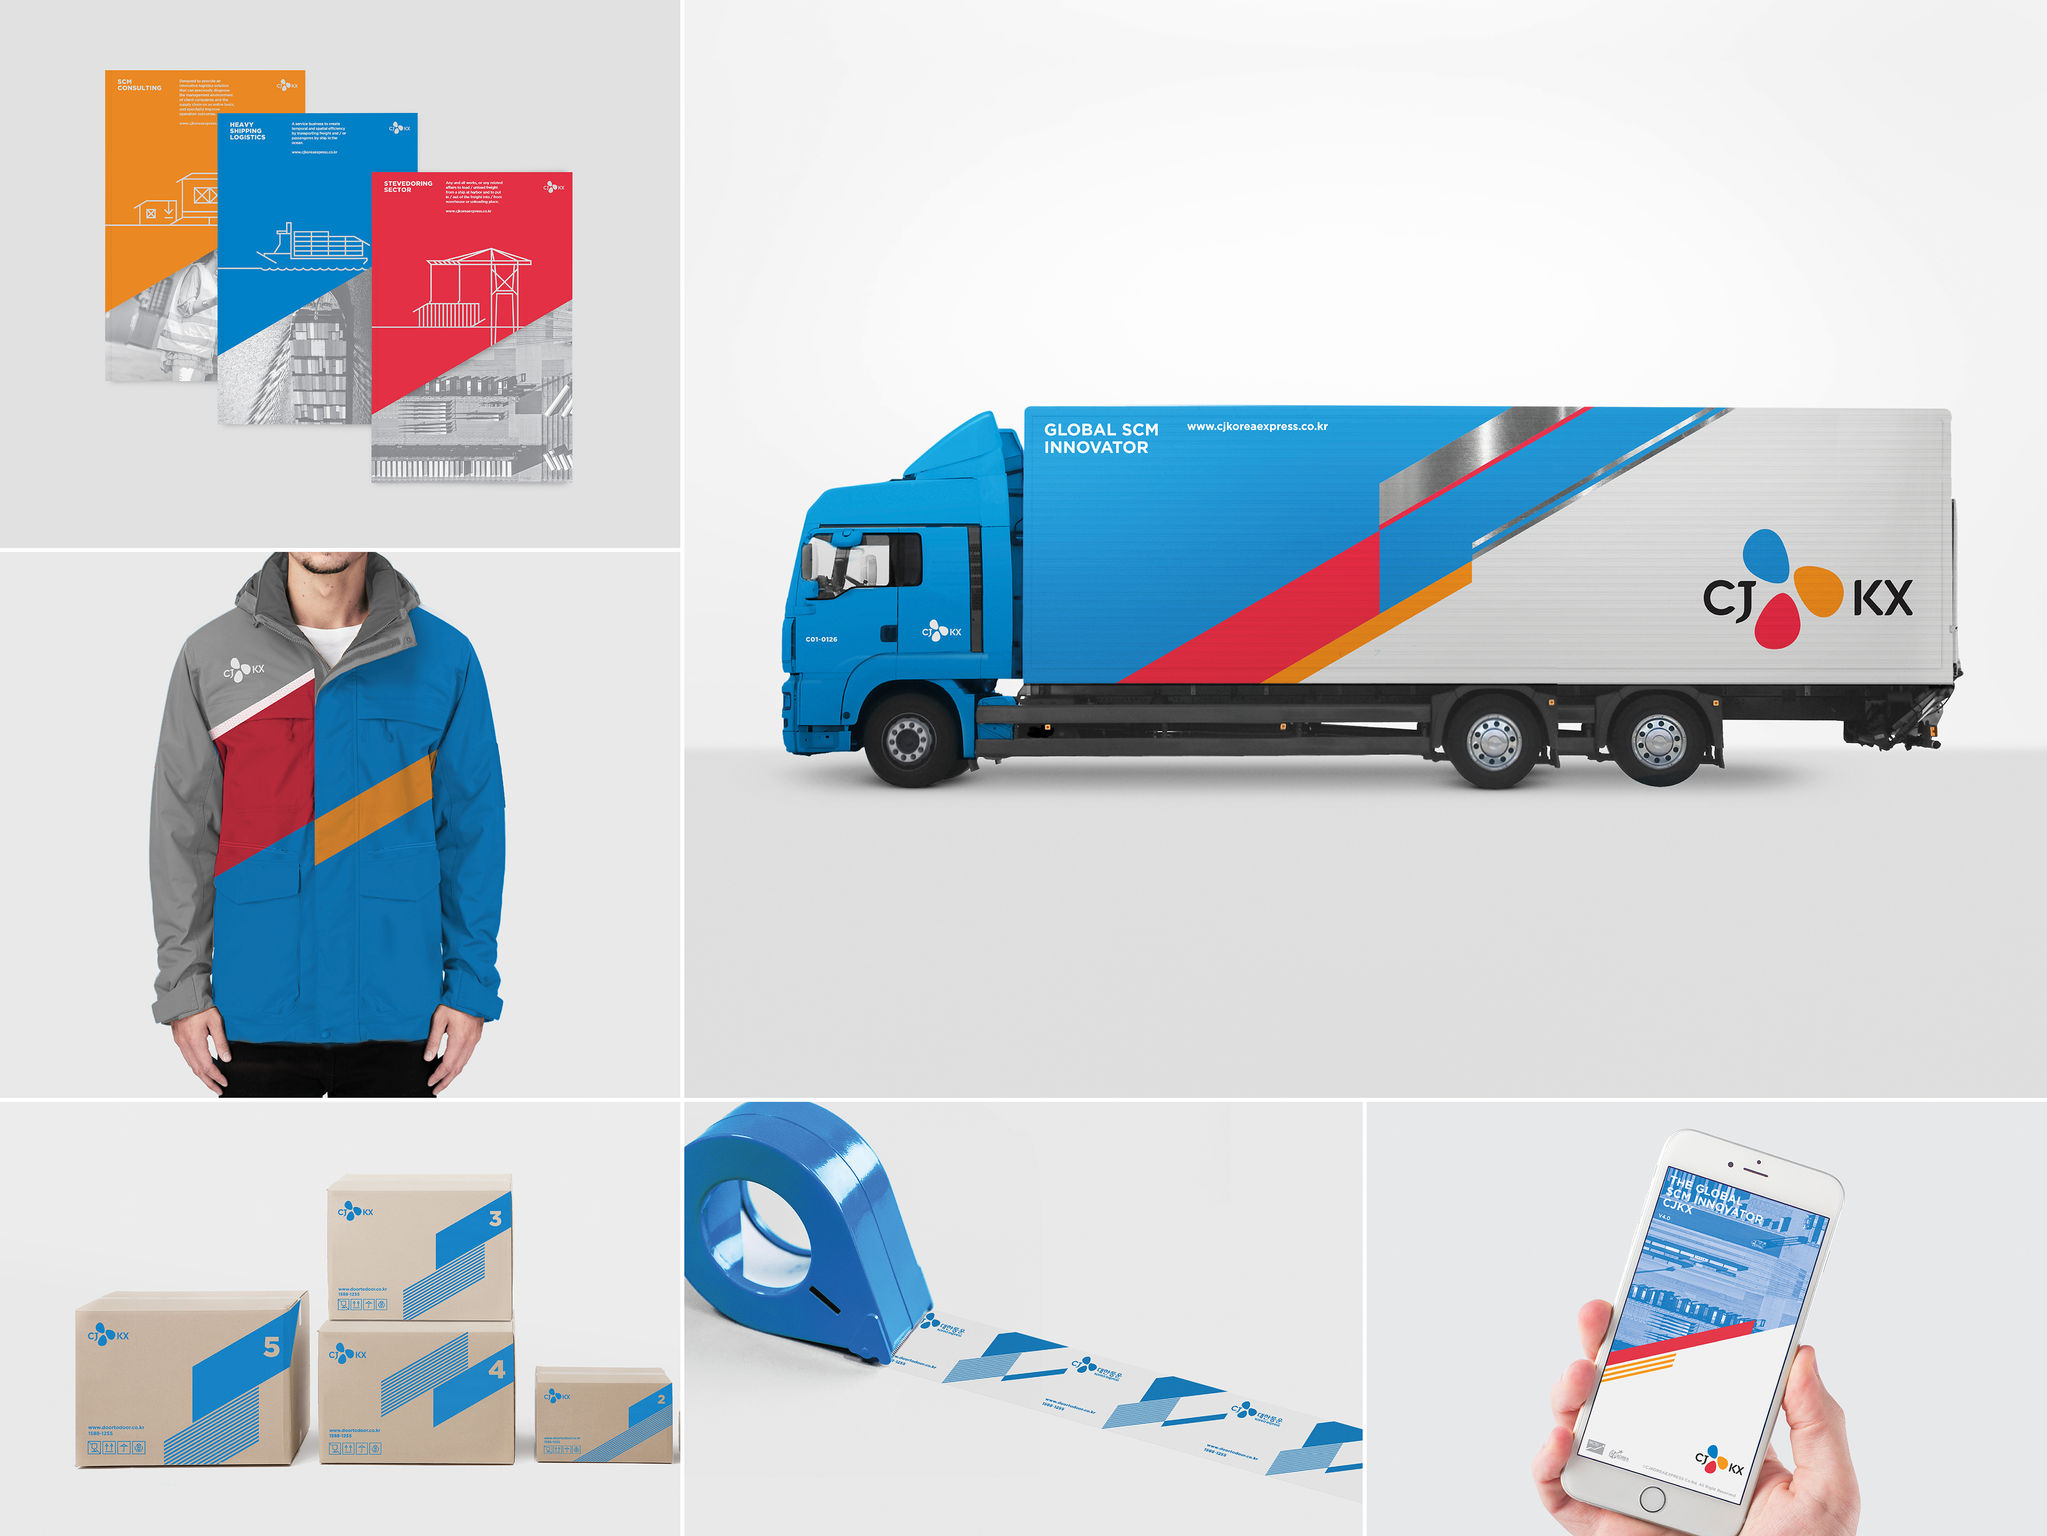 CJ Logistics | iF WORLD DESIGN GUIDE